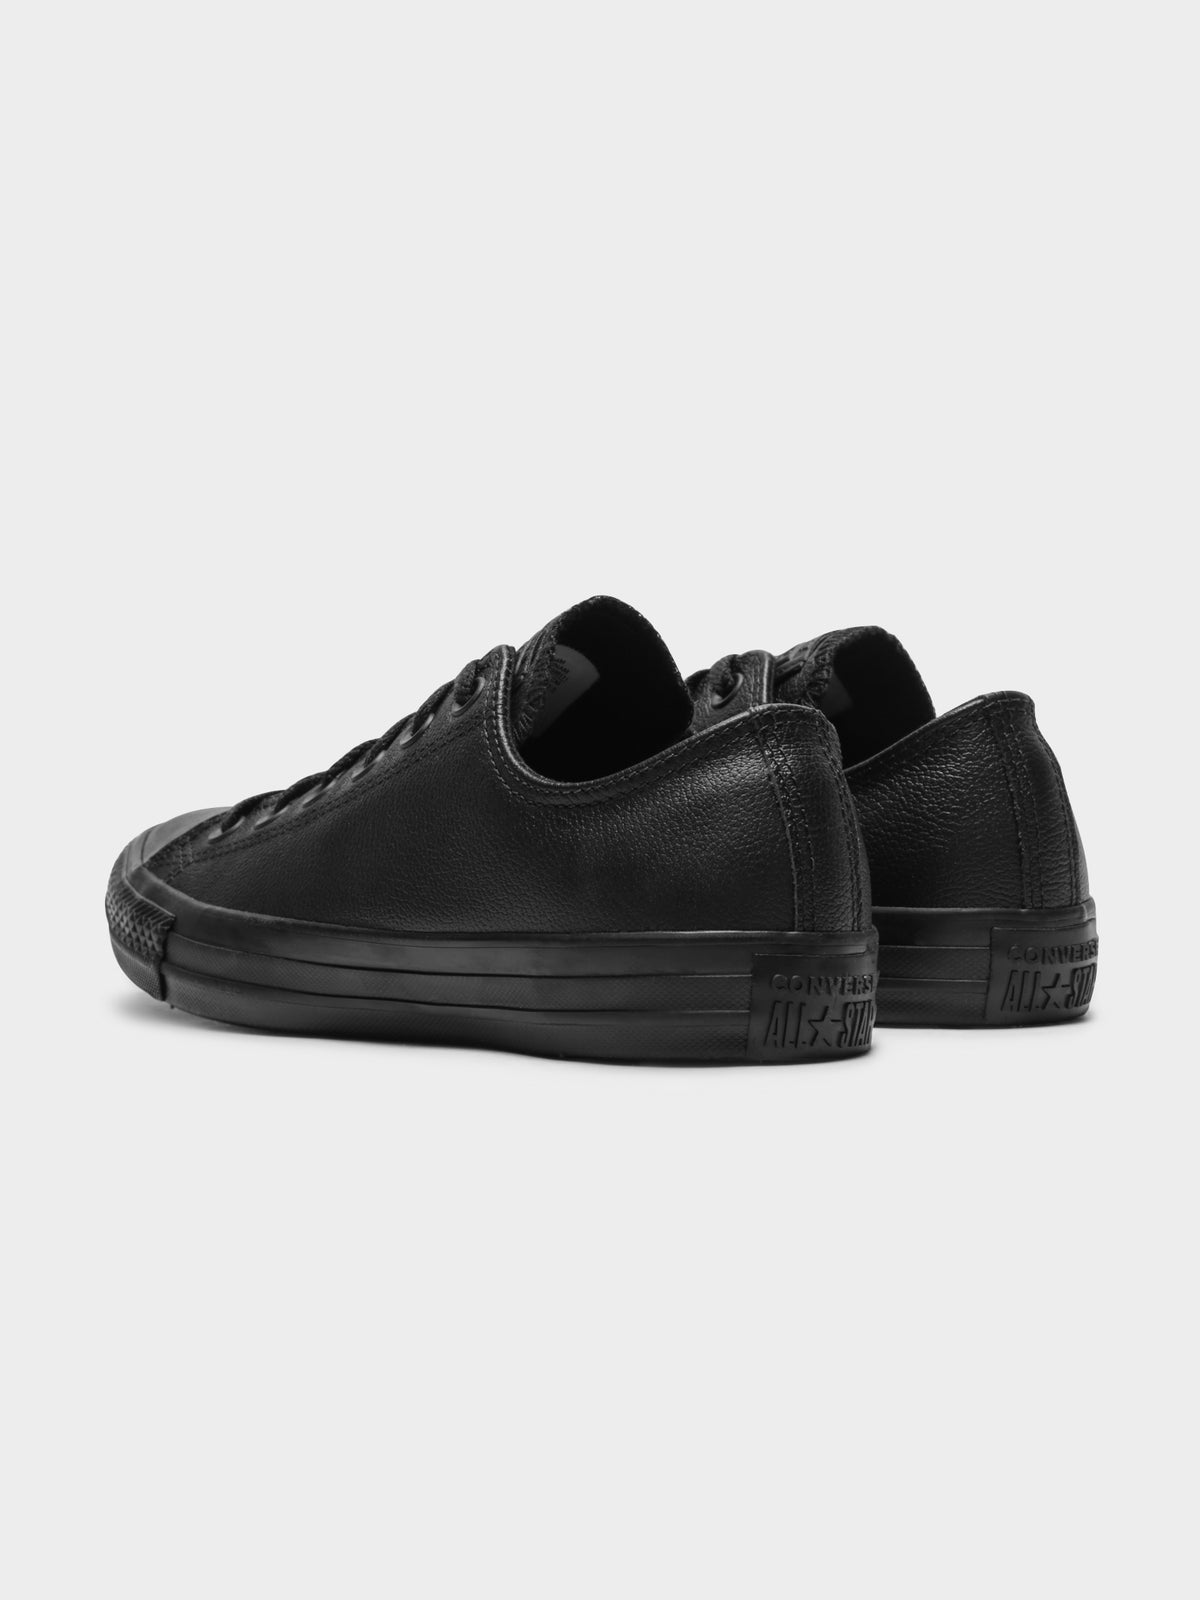 Unisex Chuck Taylor All Star Low Leather Mono Sneakers in Black